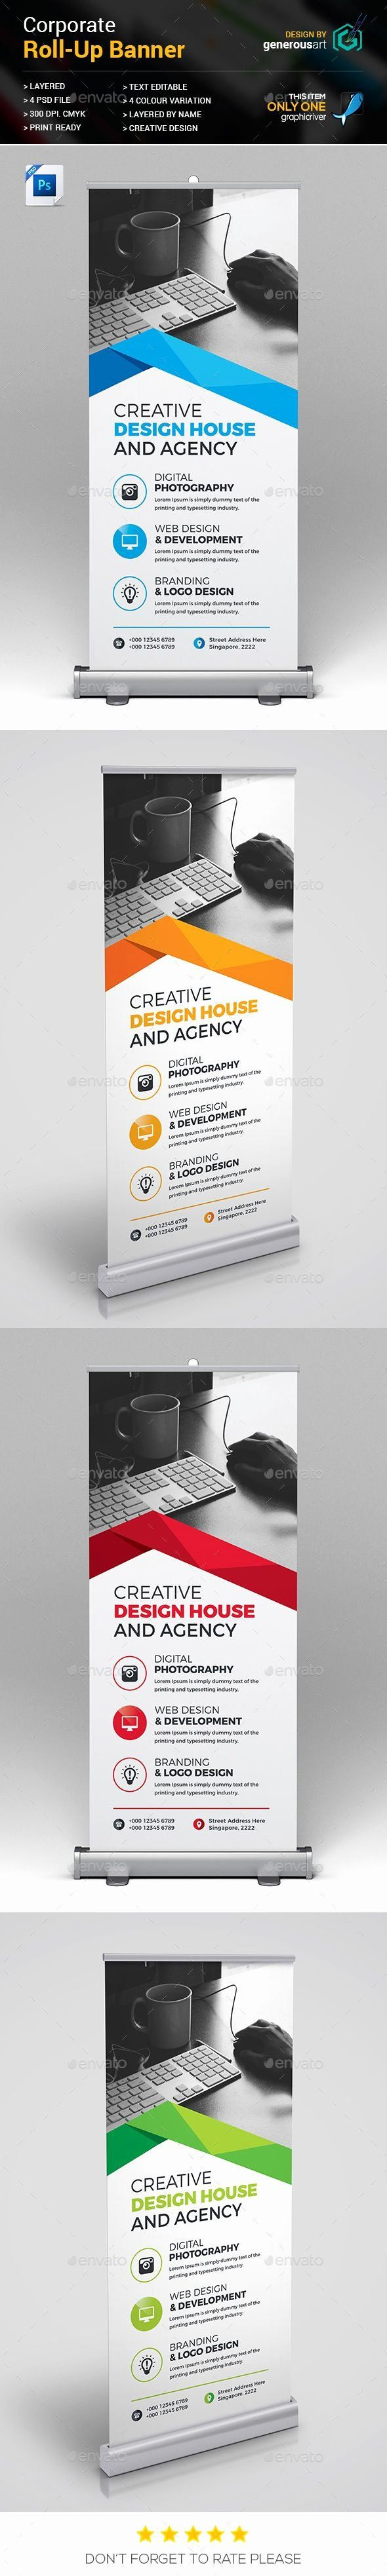 Roll Up Banner Template Awesome 1342 Best Roll Up Banner Templates Images On Pin...